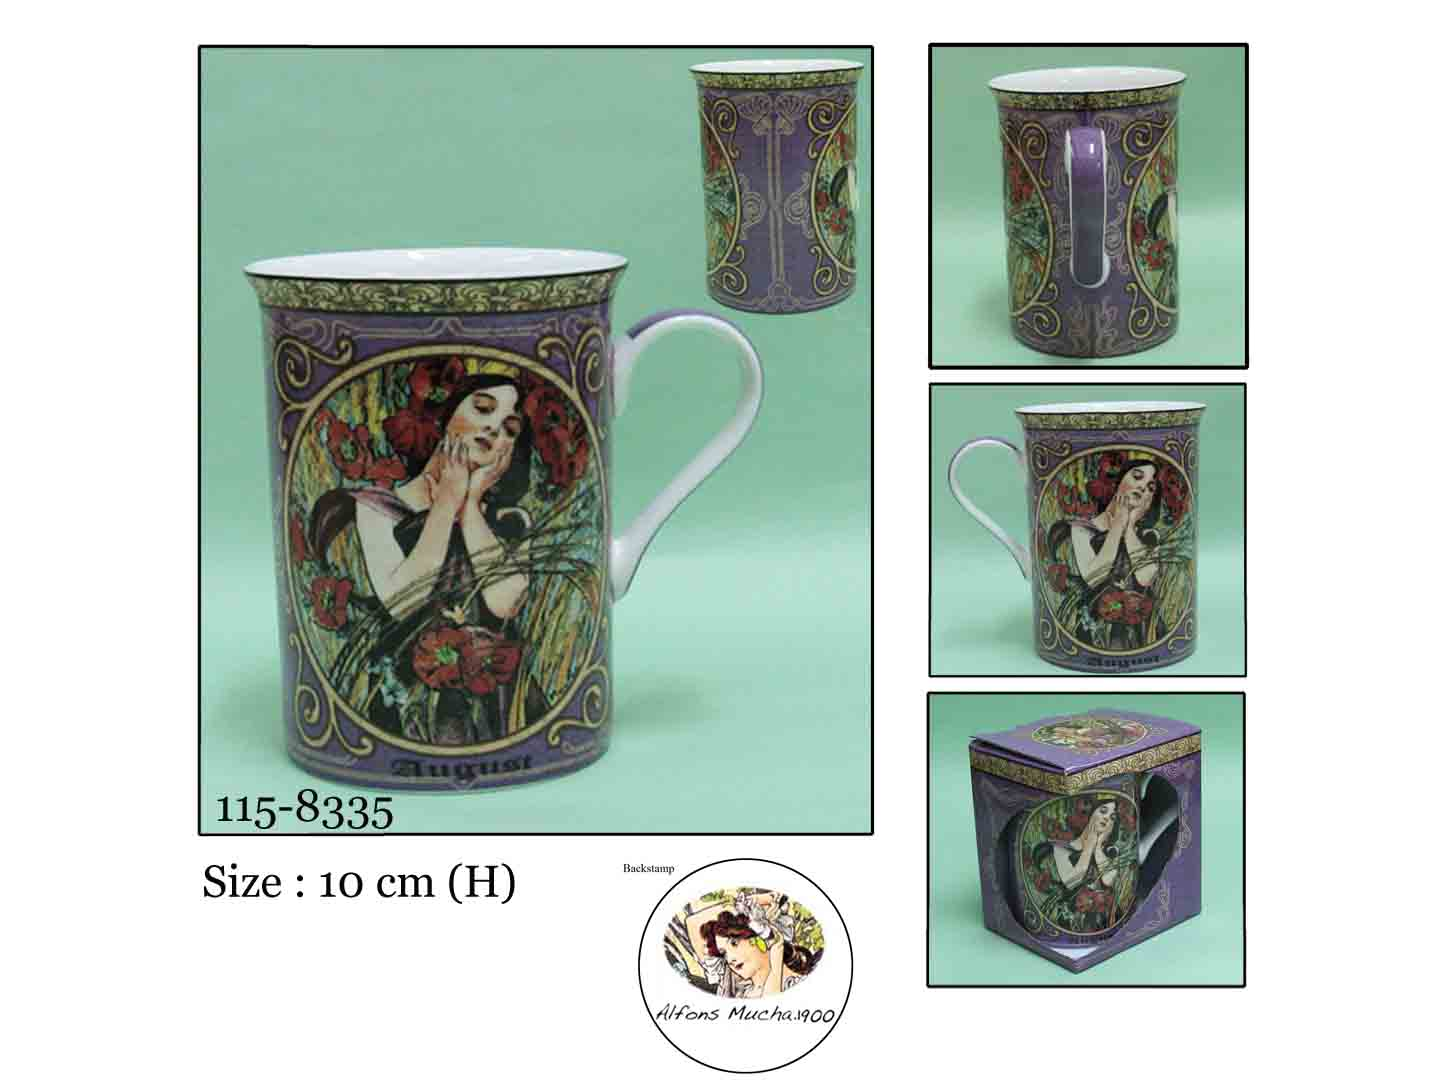 Hrnek porcelán 250ml AUGUST - SRPEN Mucha